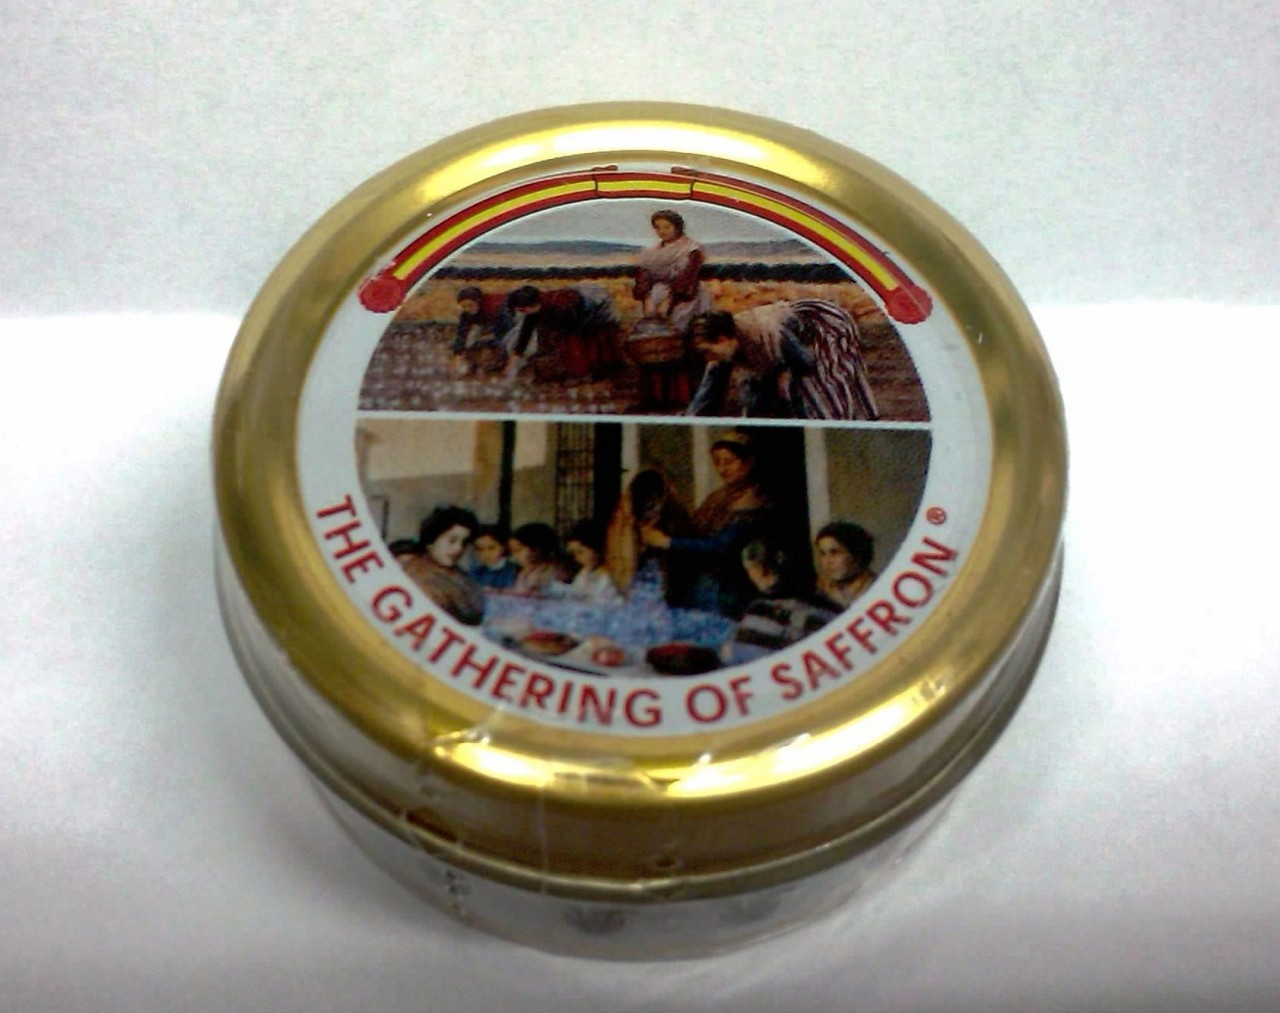 Gathering Brand Saffron 1 gram by